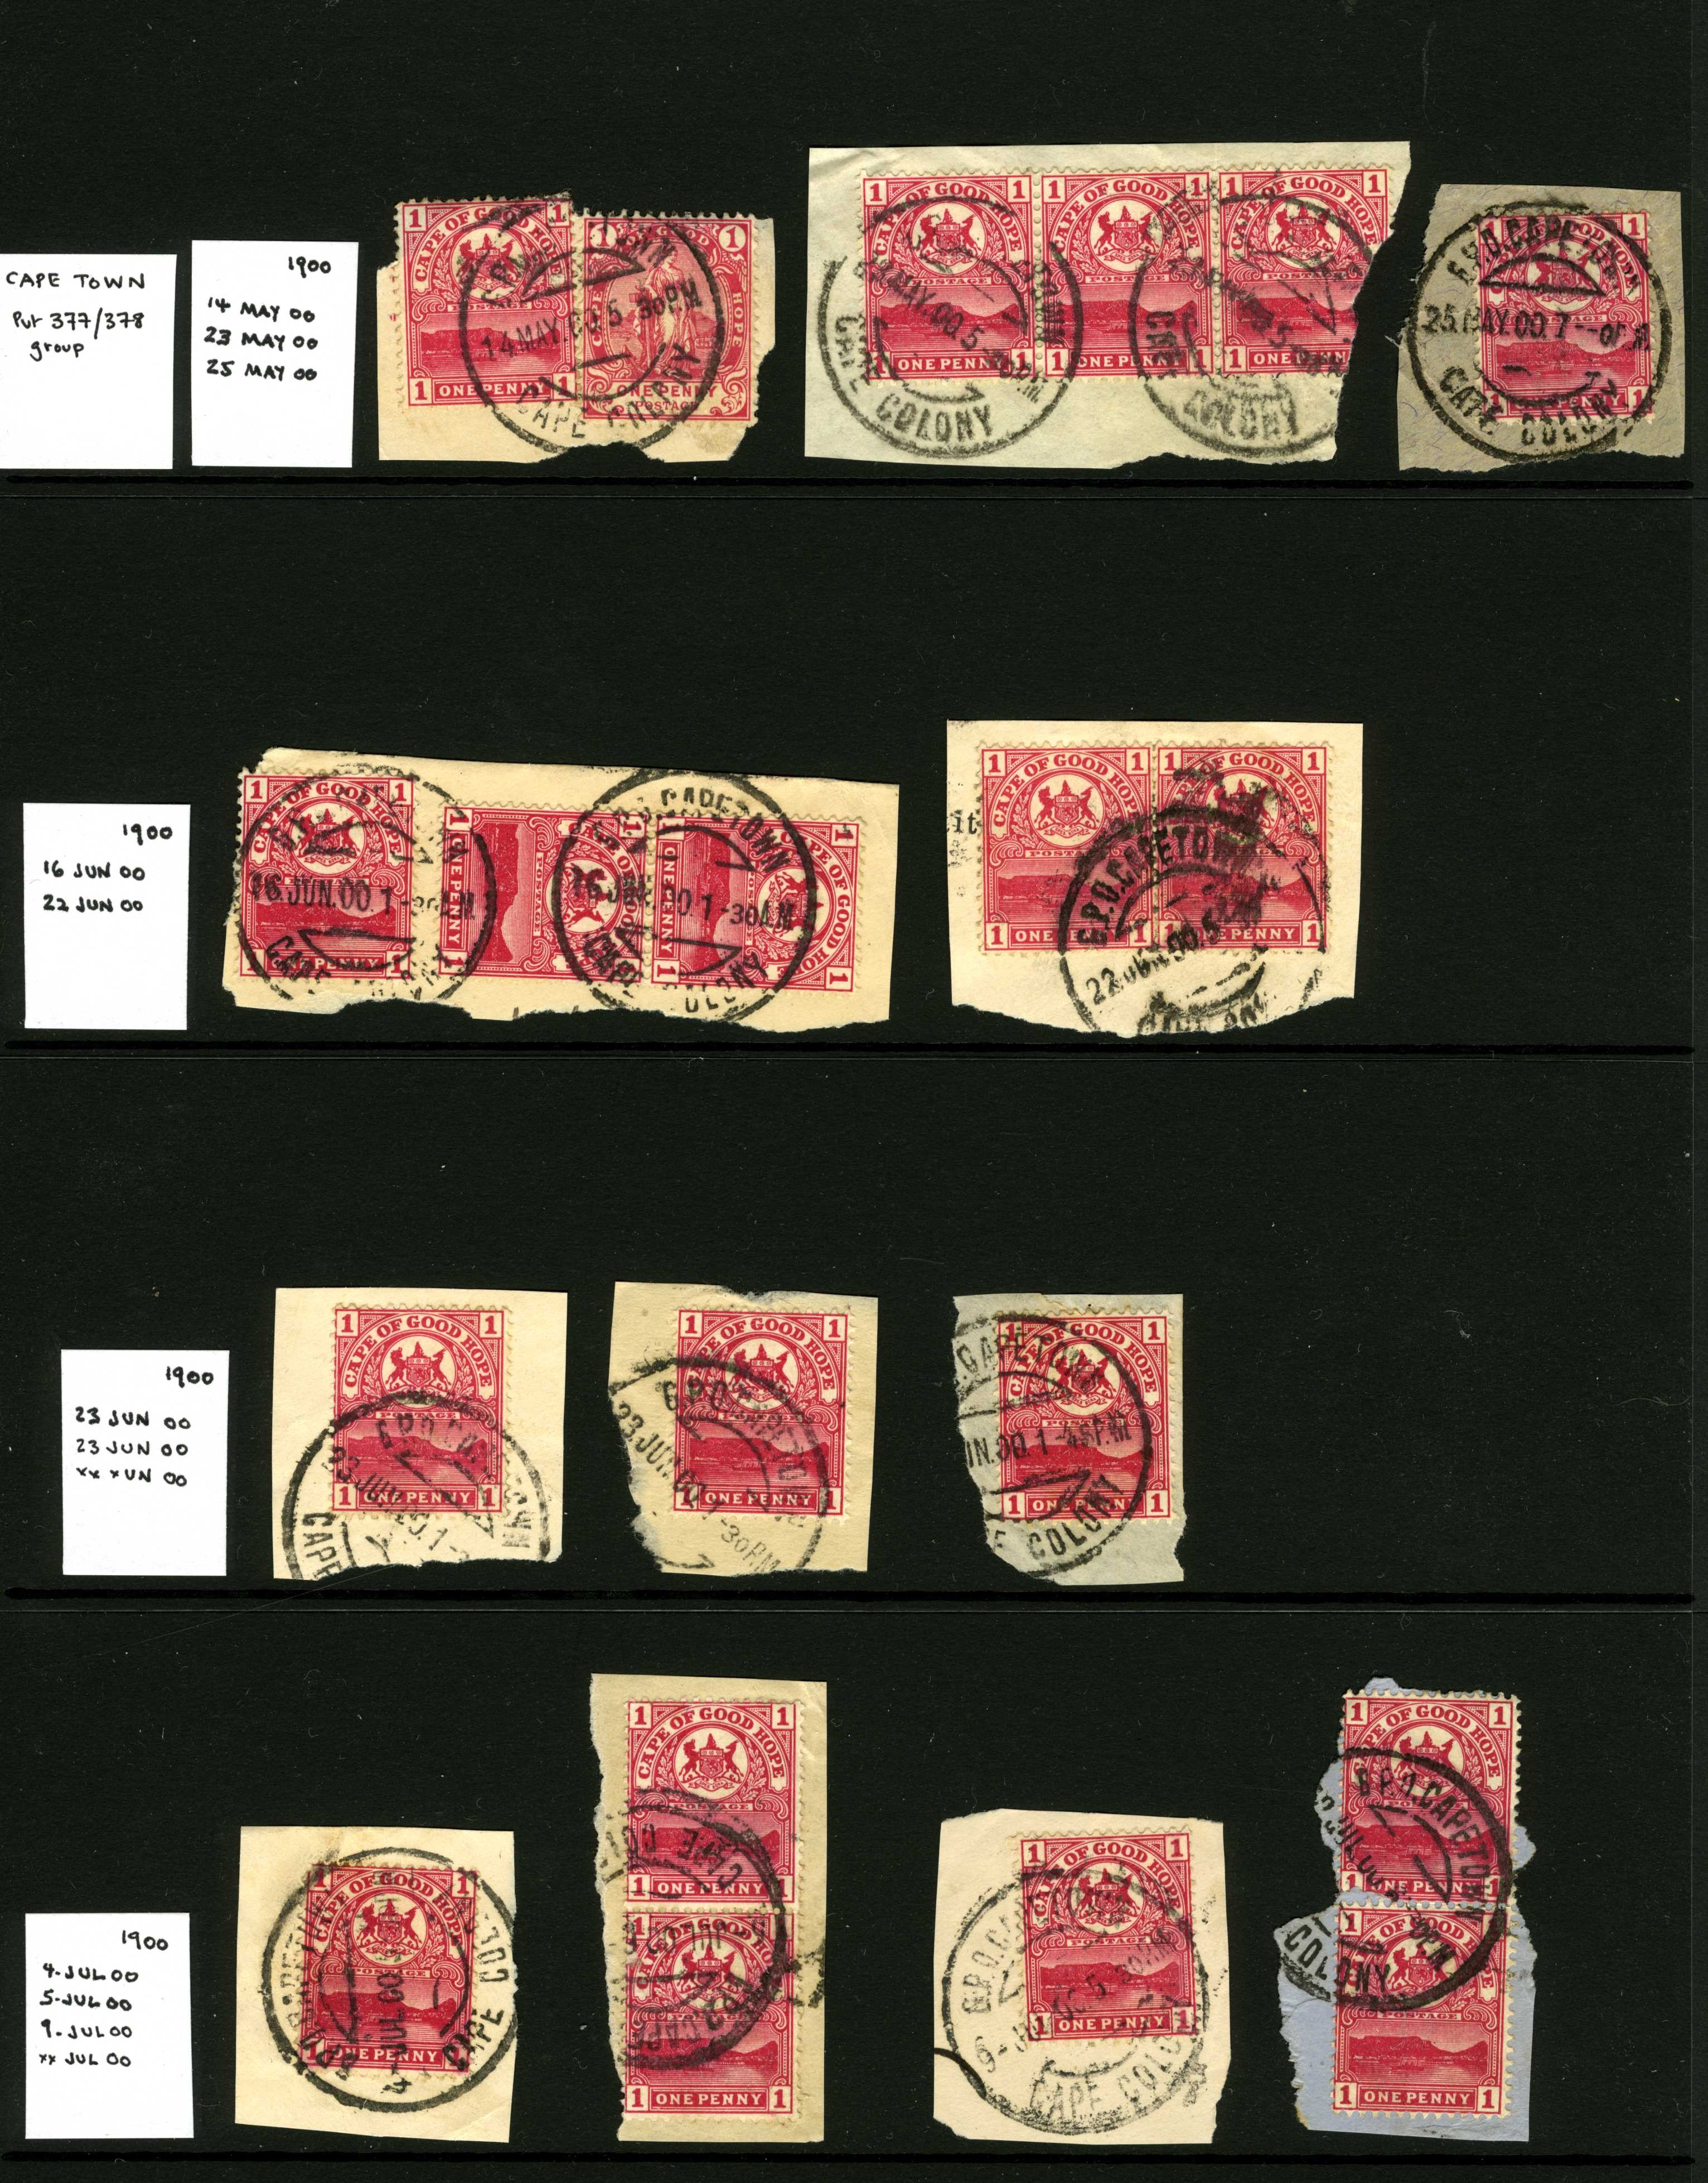 Cape-Town-Put-377-8-MAY-1900-JUL-1900-SP-coll.jpg